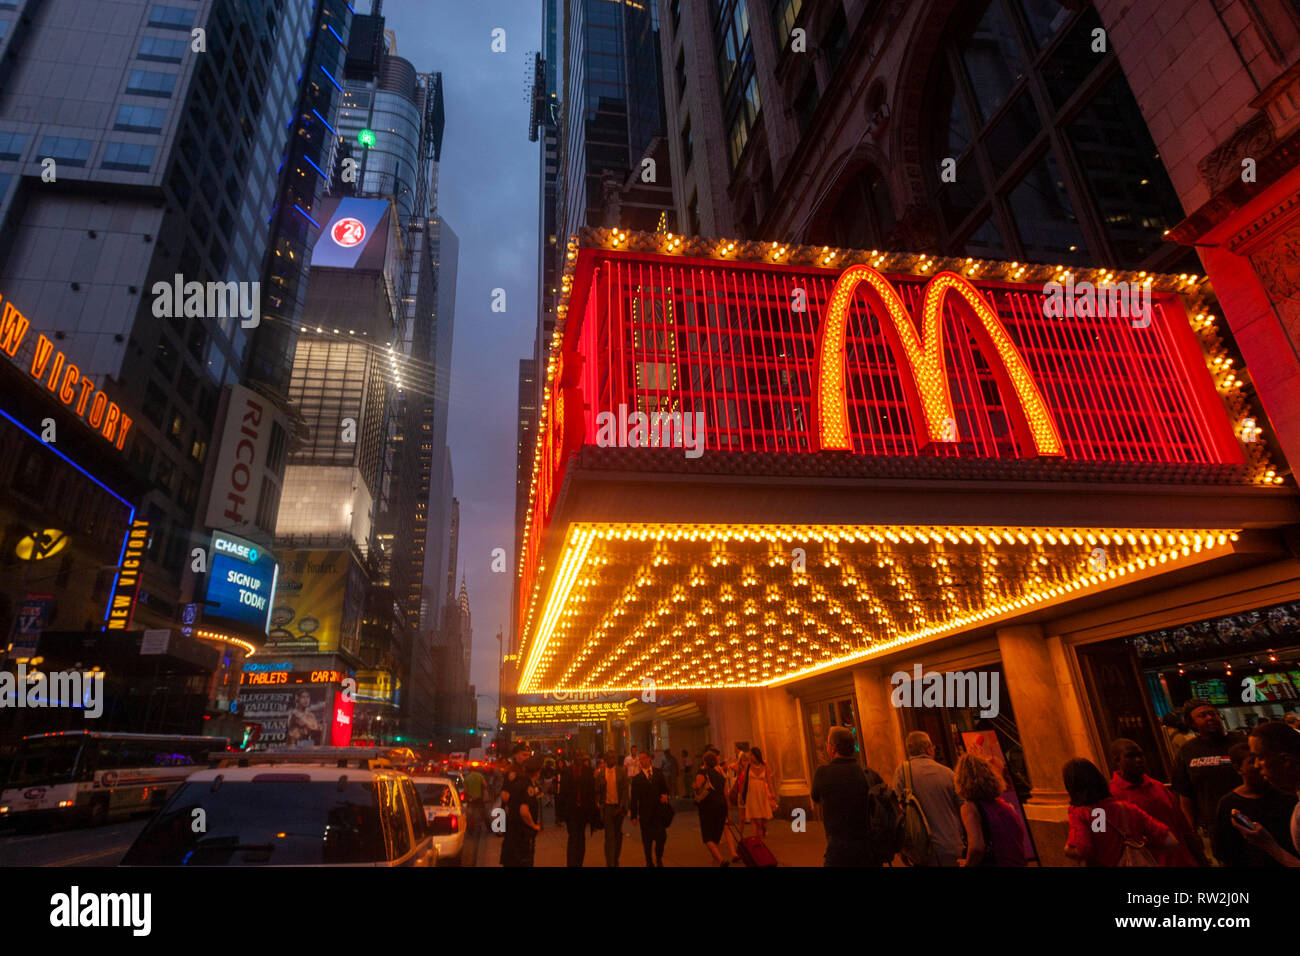 McDonald's in W 42nd St at sunset near Times Sq, Manhattan, New York City, USA - Stock Image